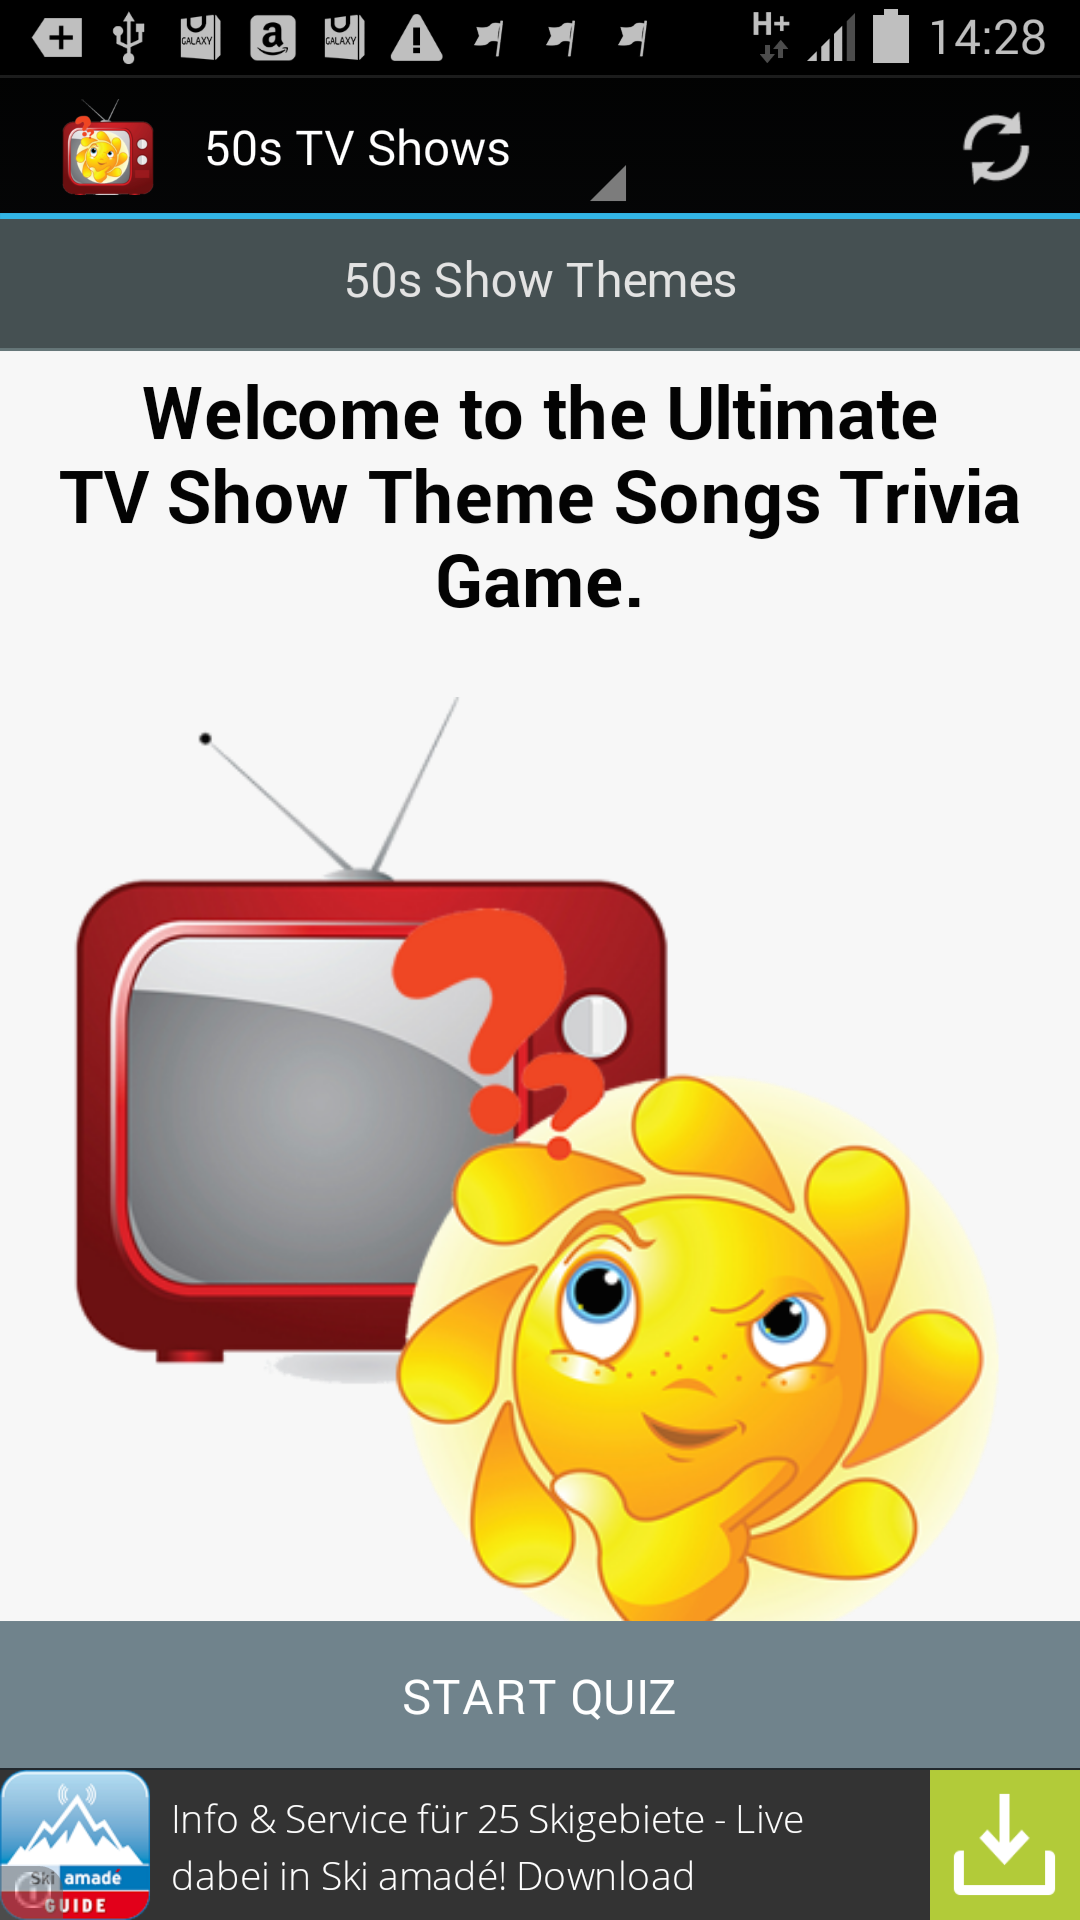 TV Show Theme Songs Trivia: Amazon co uk: Appstore for Android